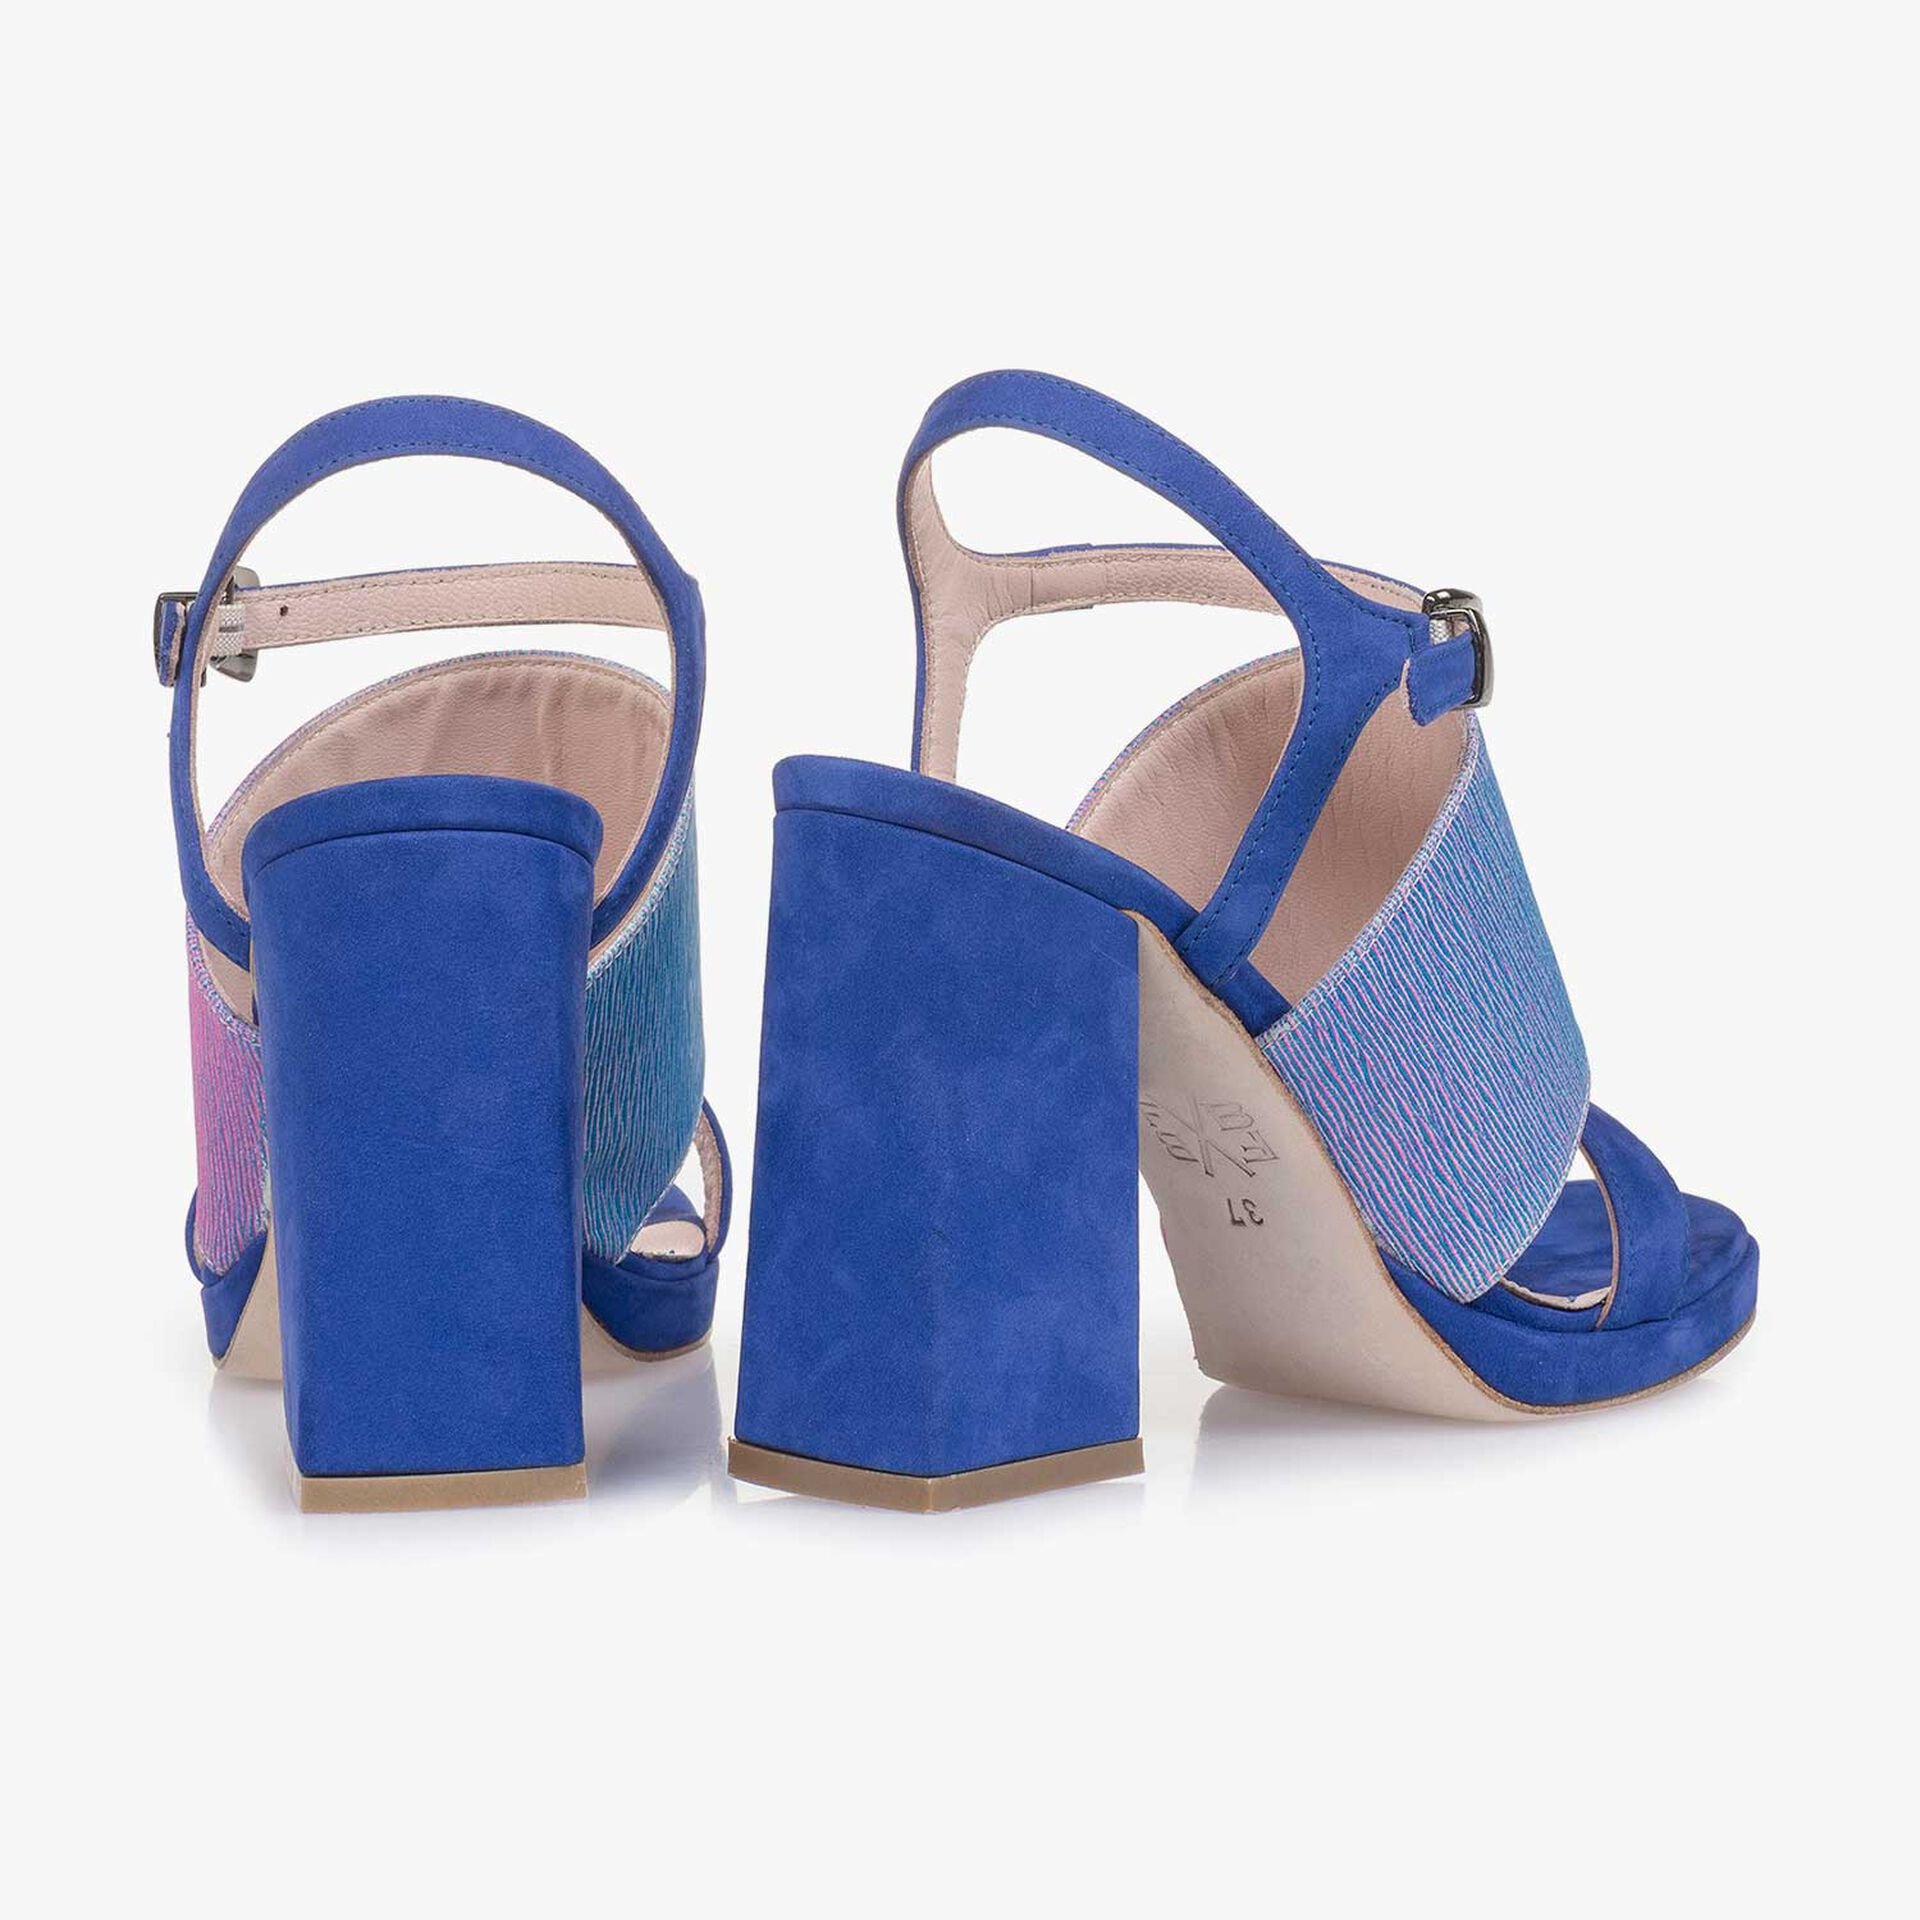 Blue high-heeled suede leather sandal with print